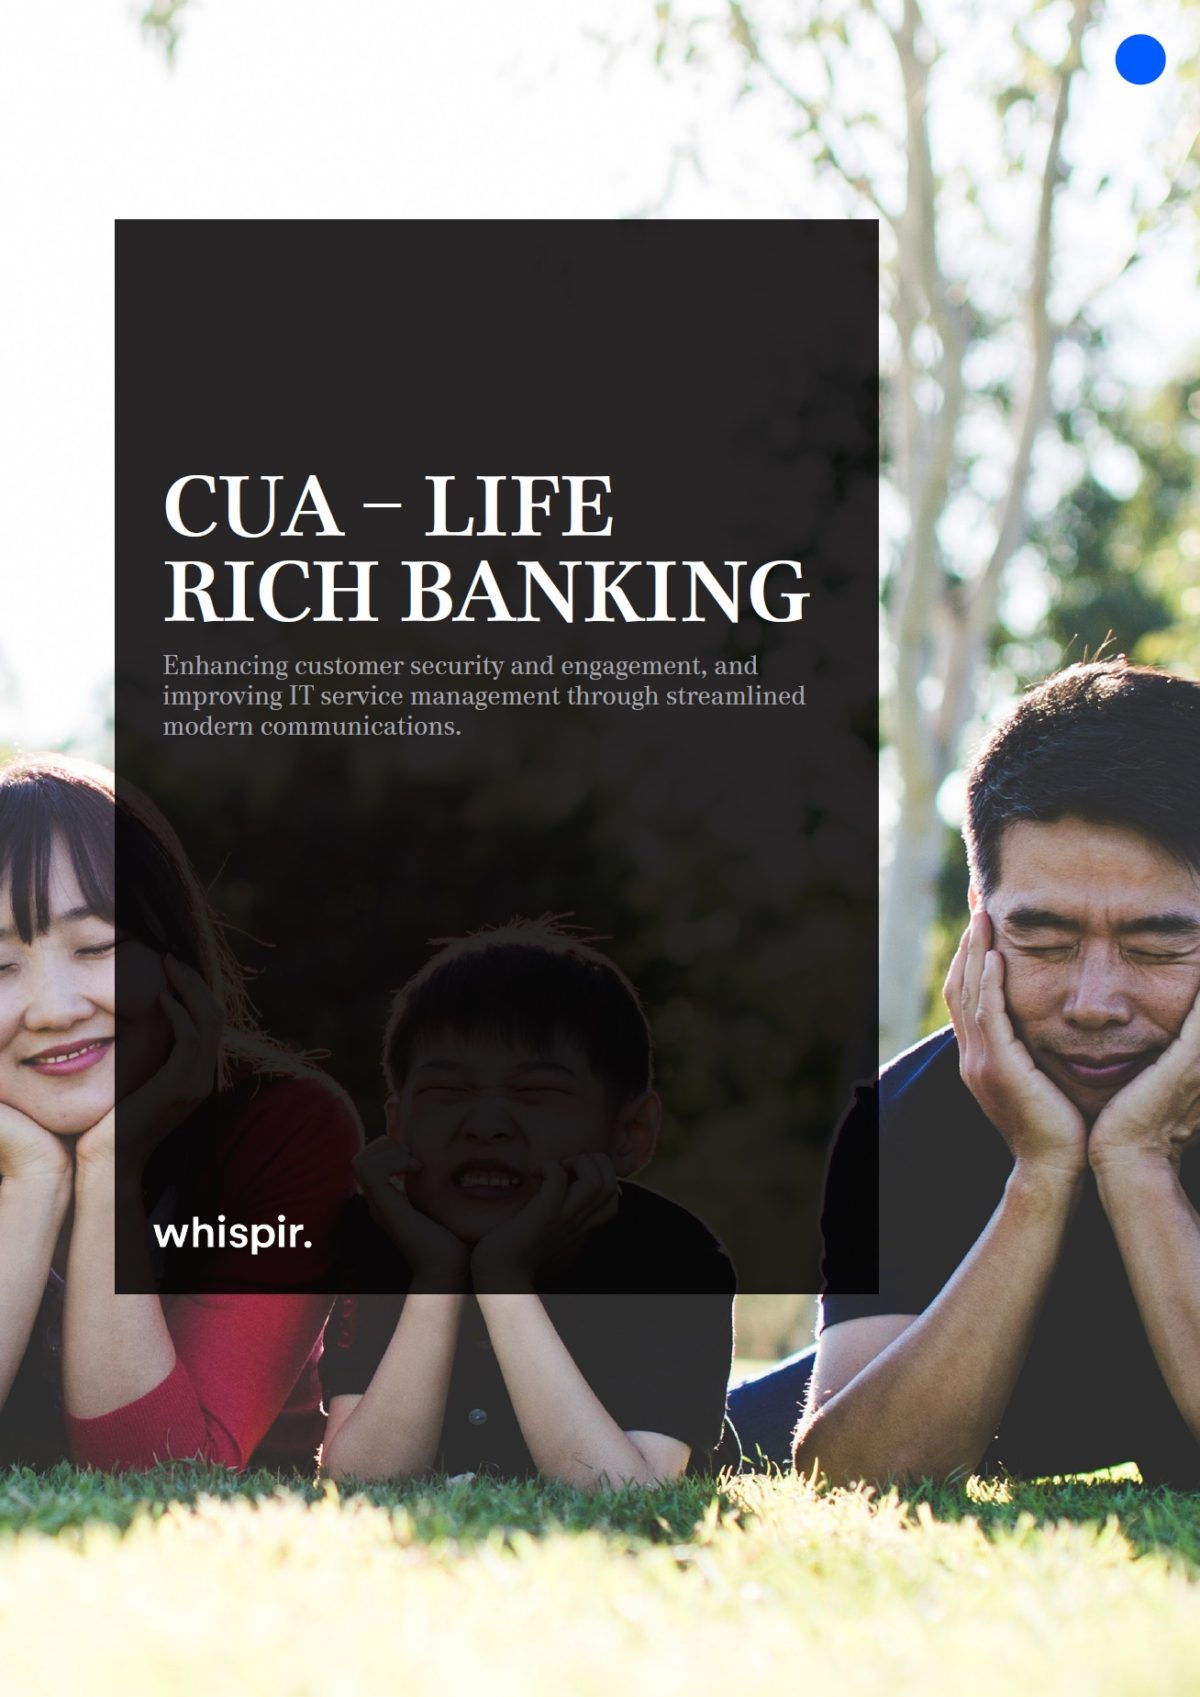 Credit Union of Australia Case Study